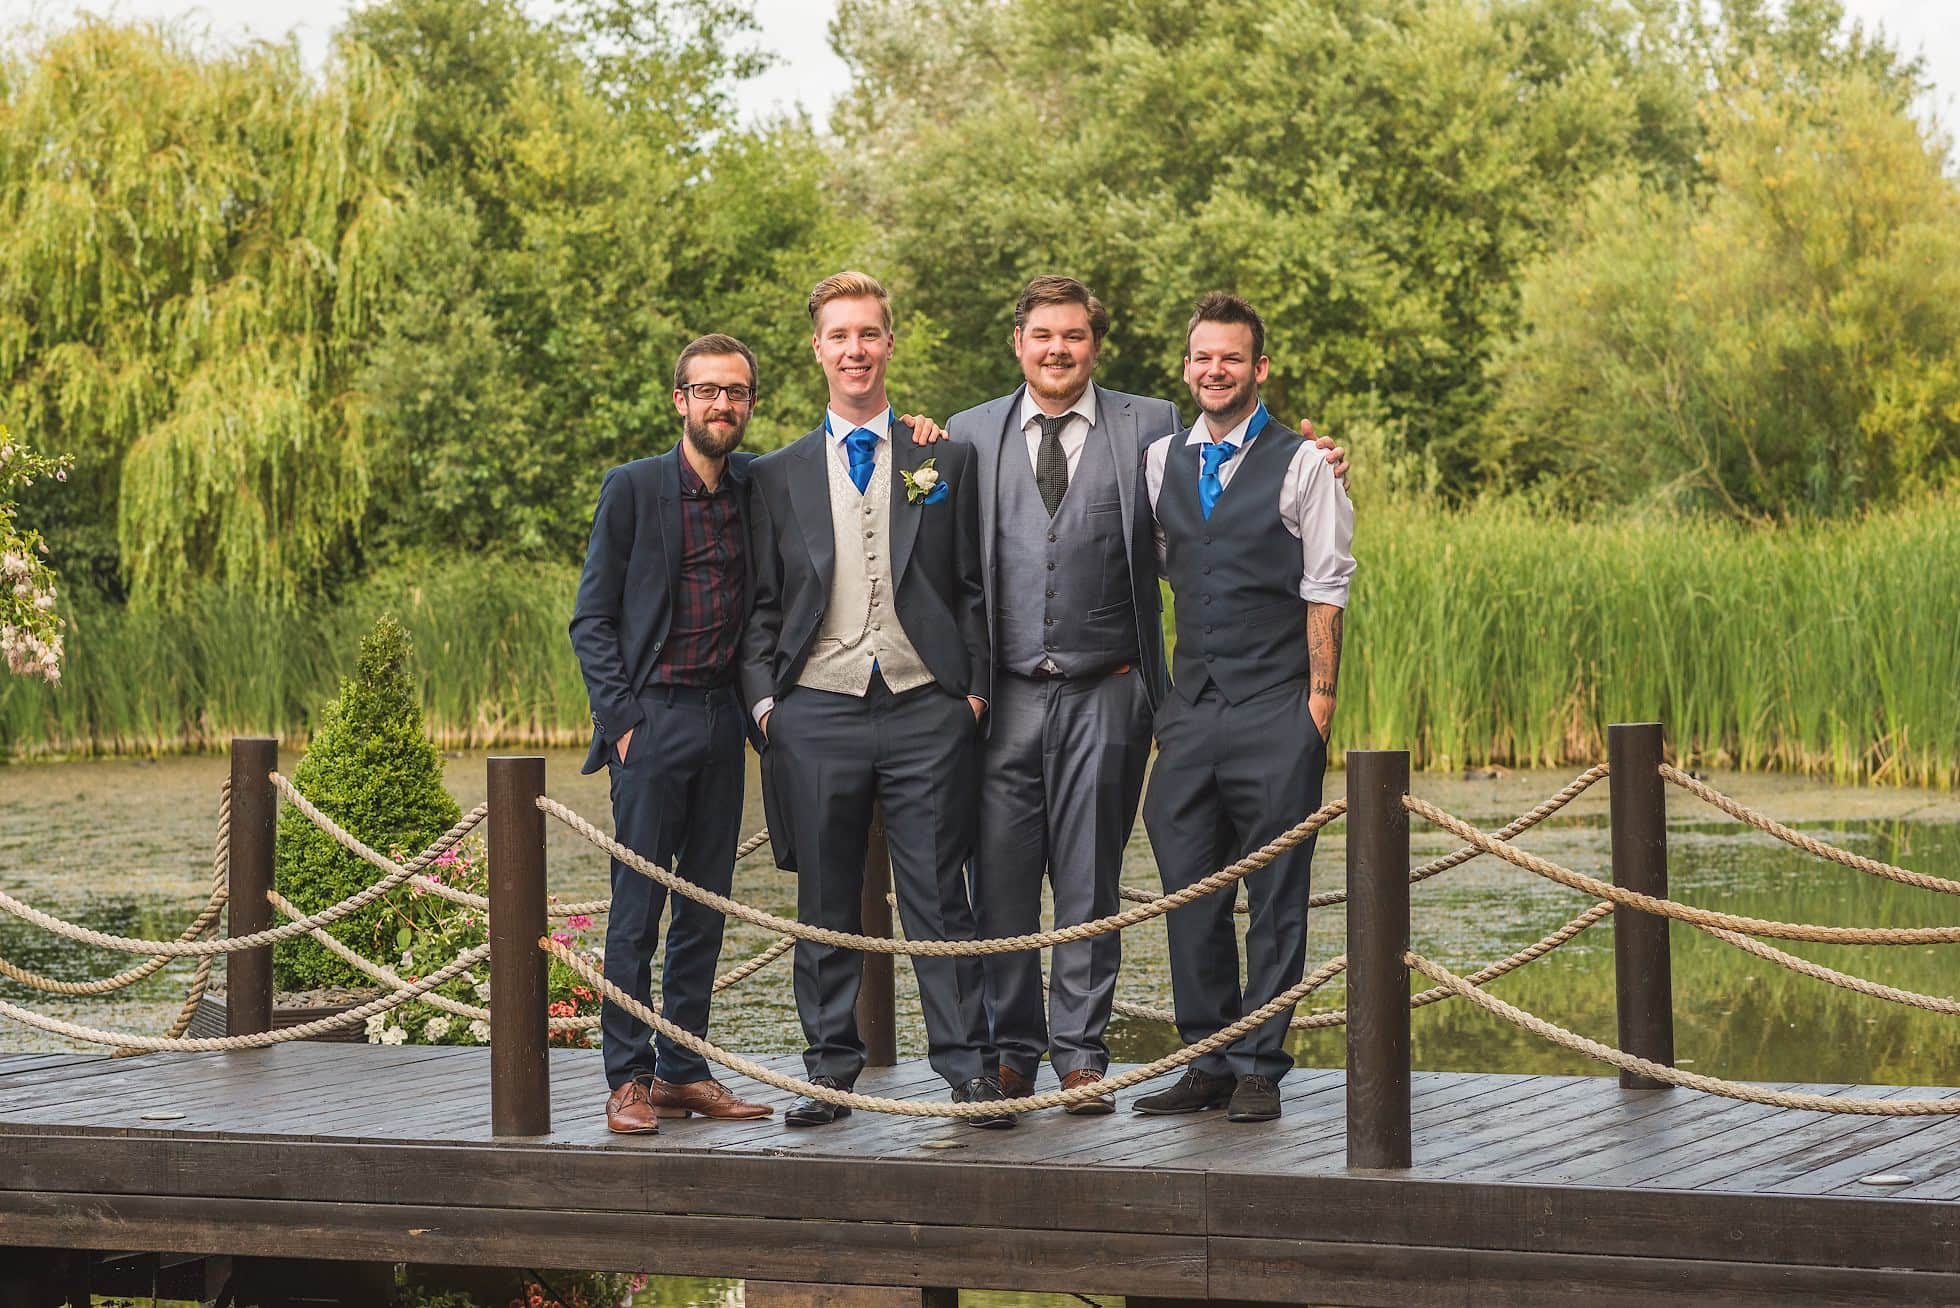 Groom and friends on bridge